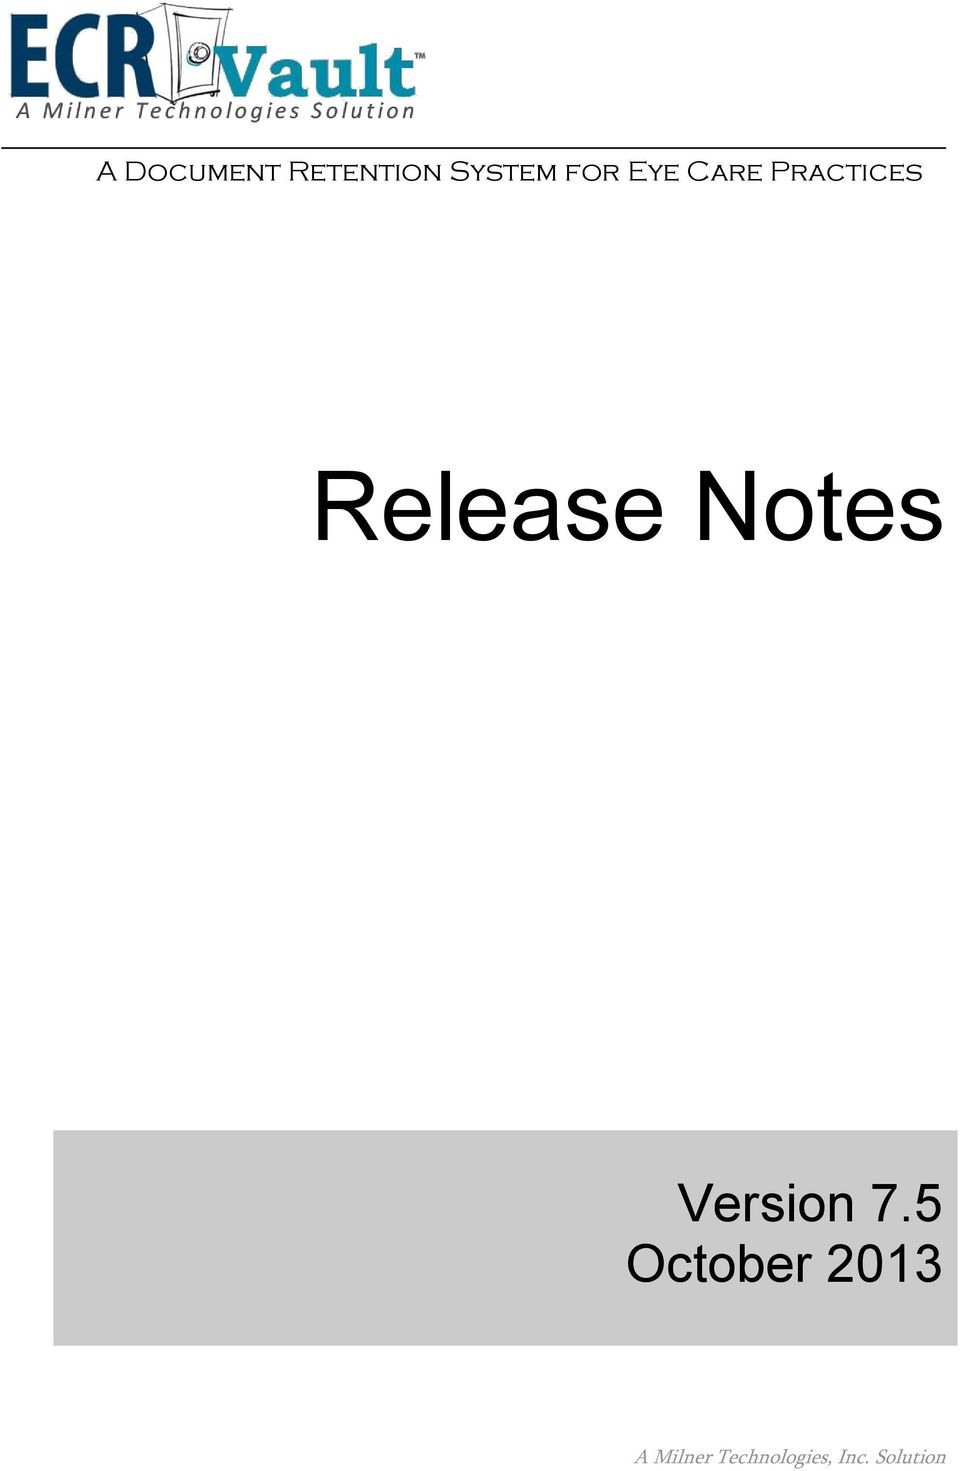 Release Notes Version 7.